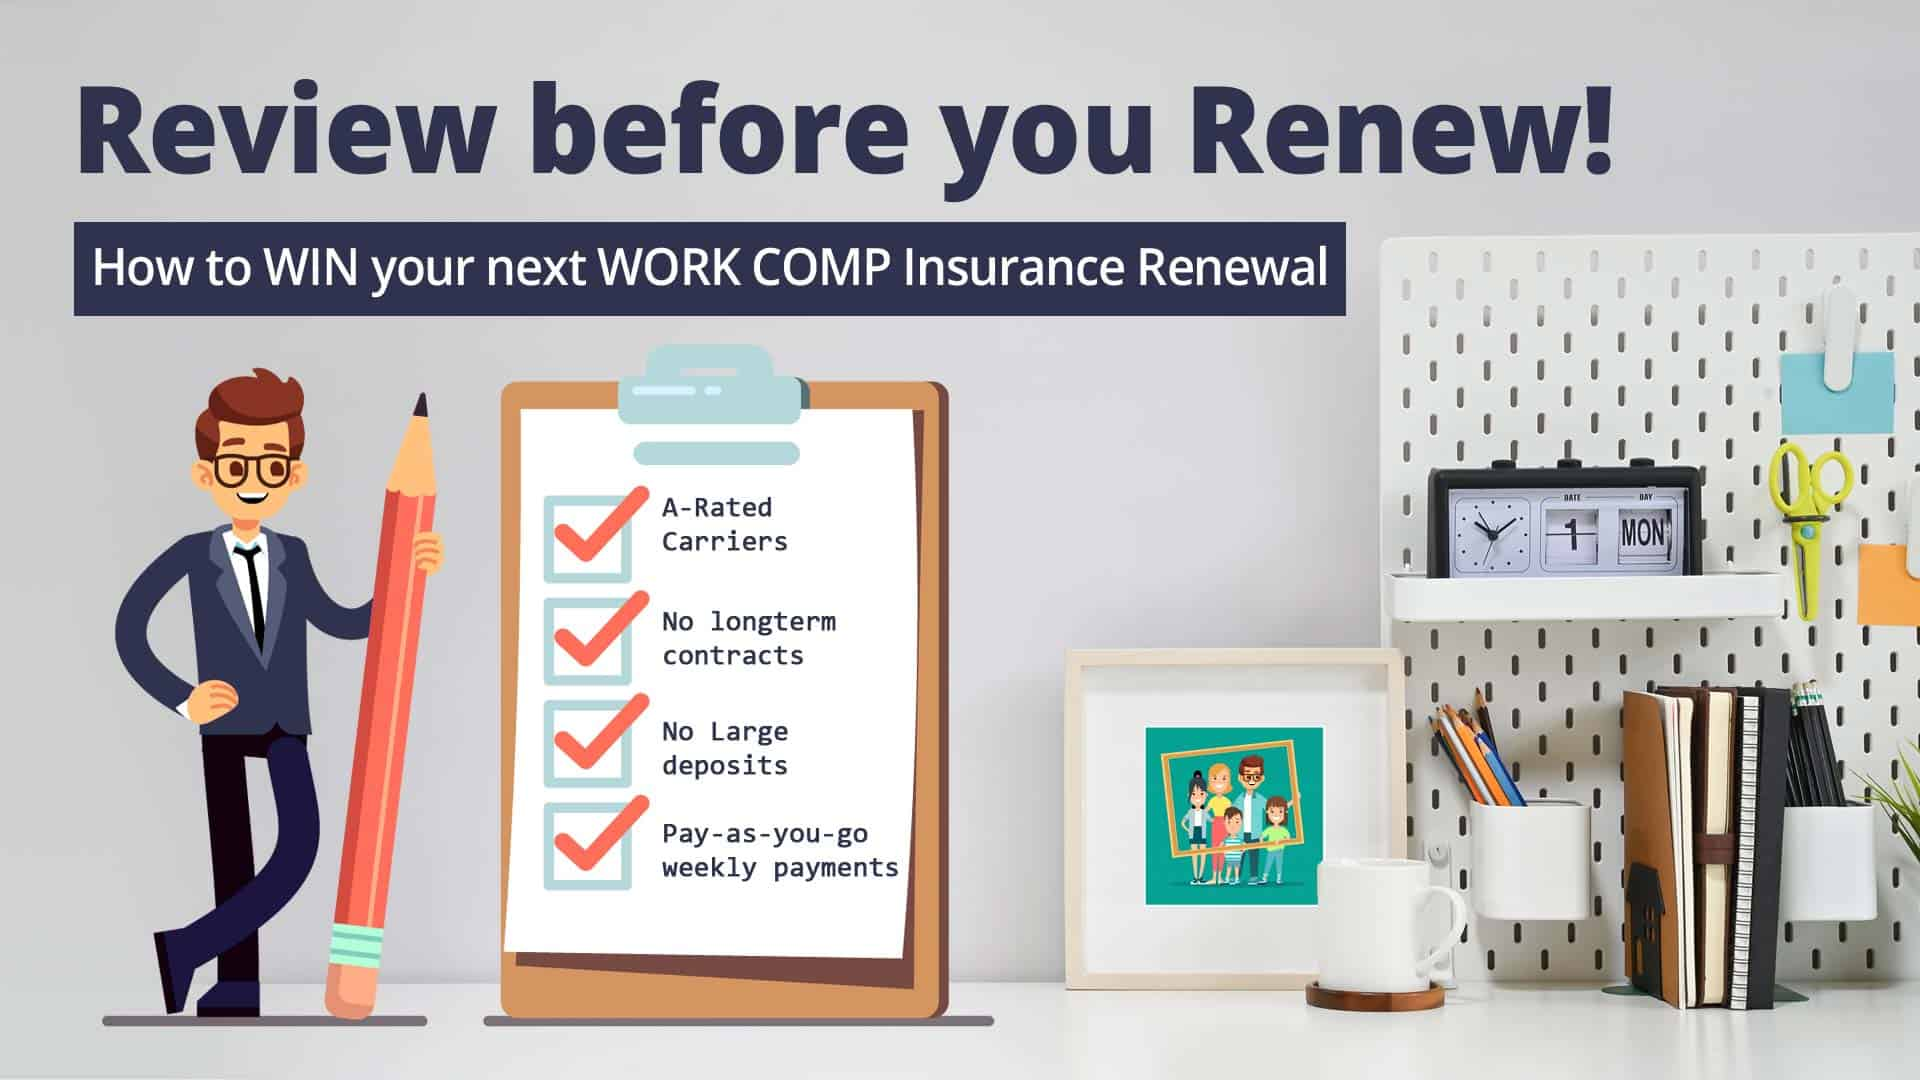 Simple Insurance - Work Comp Review